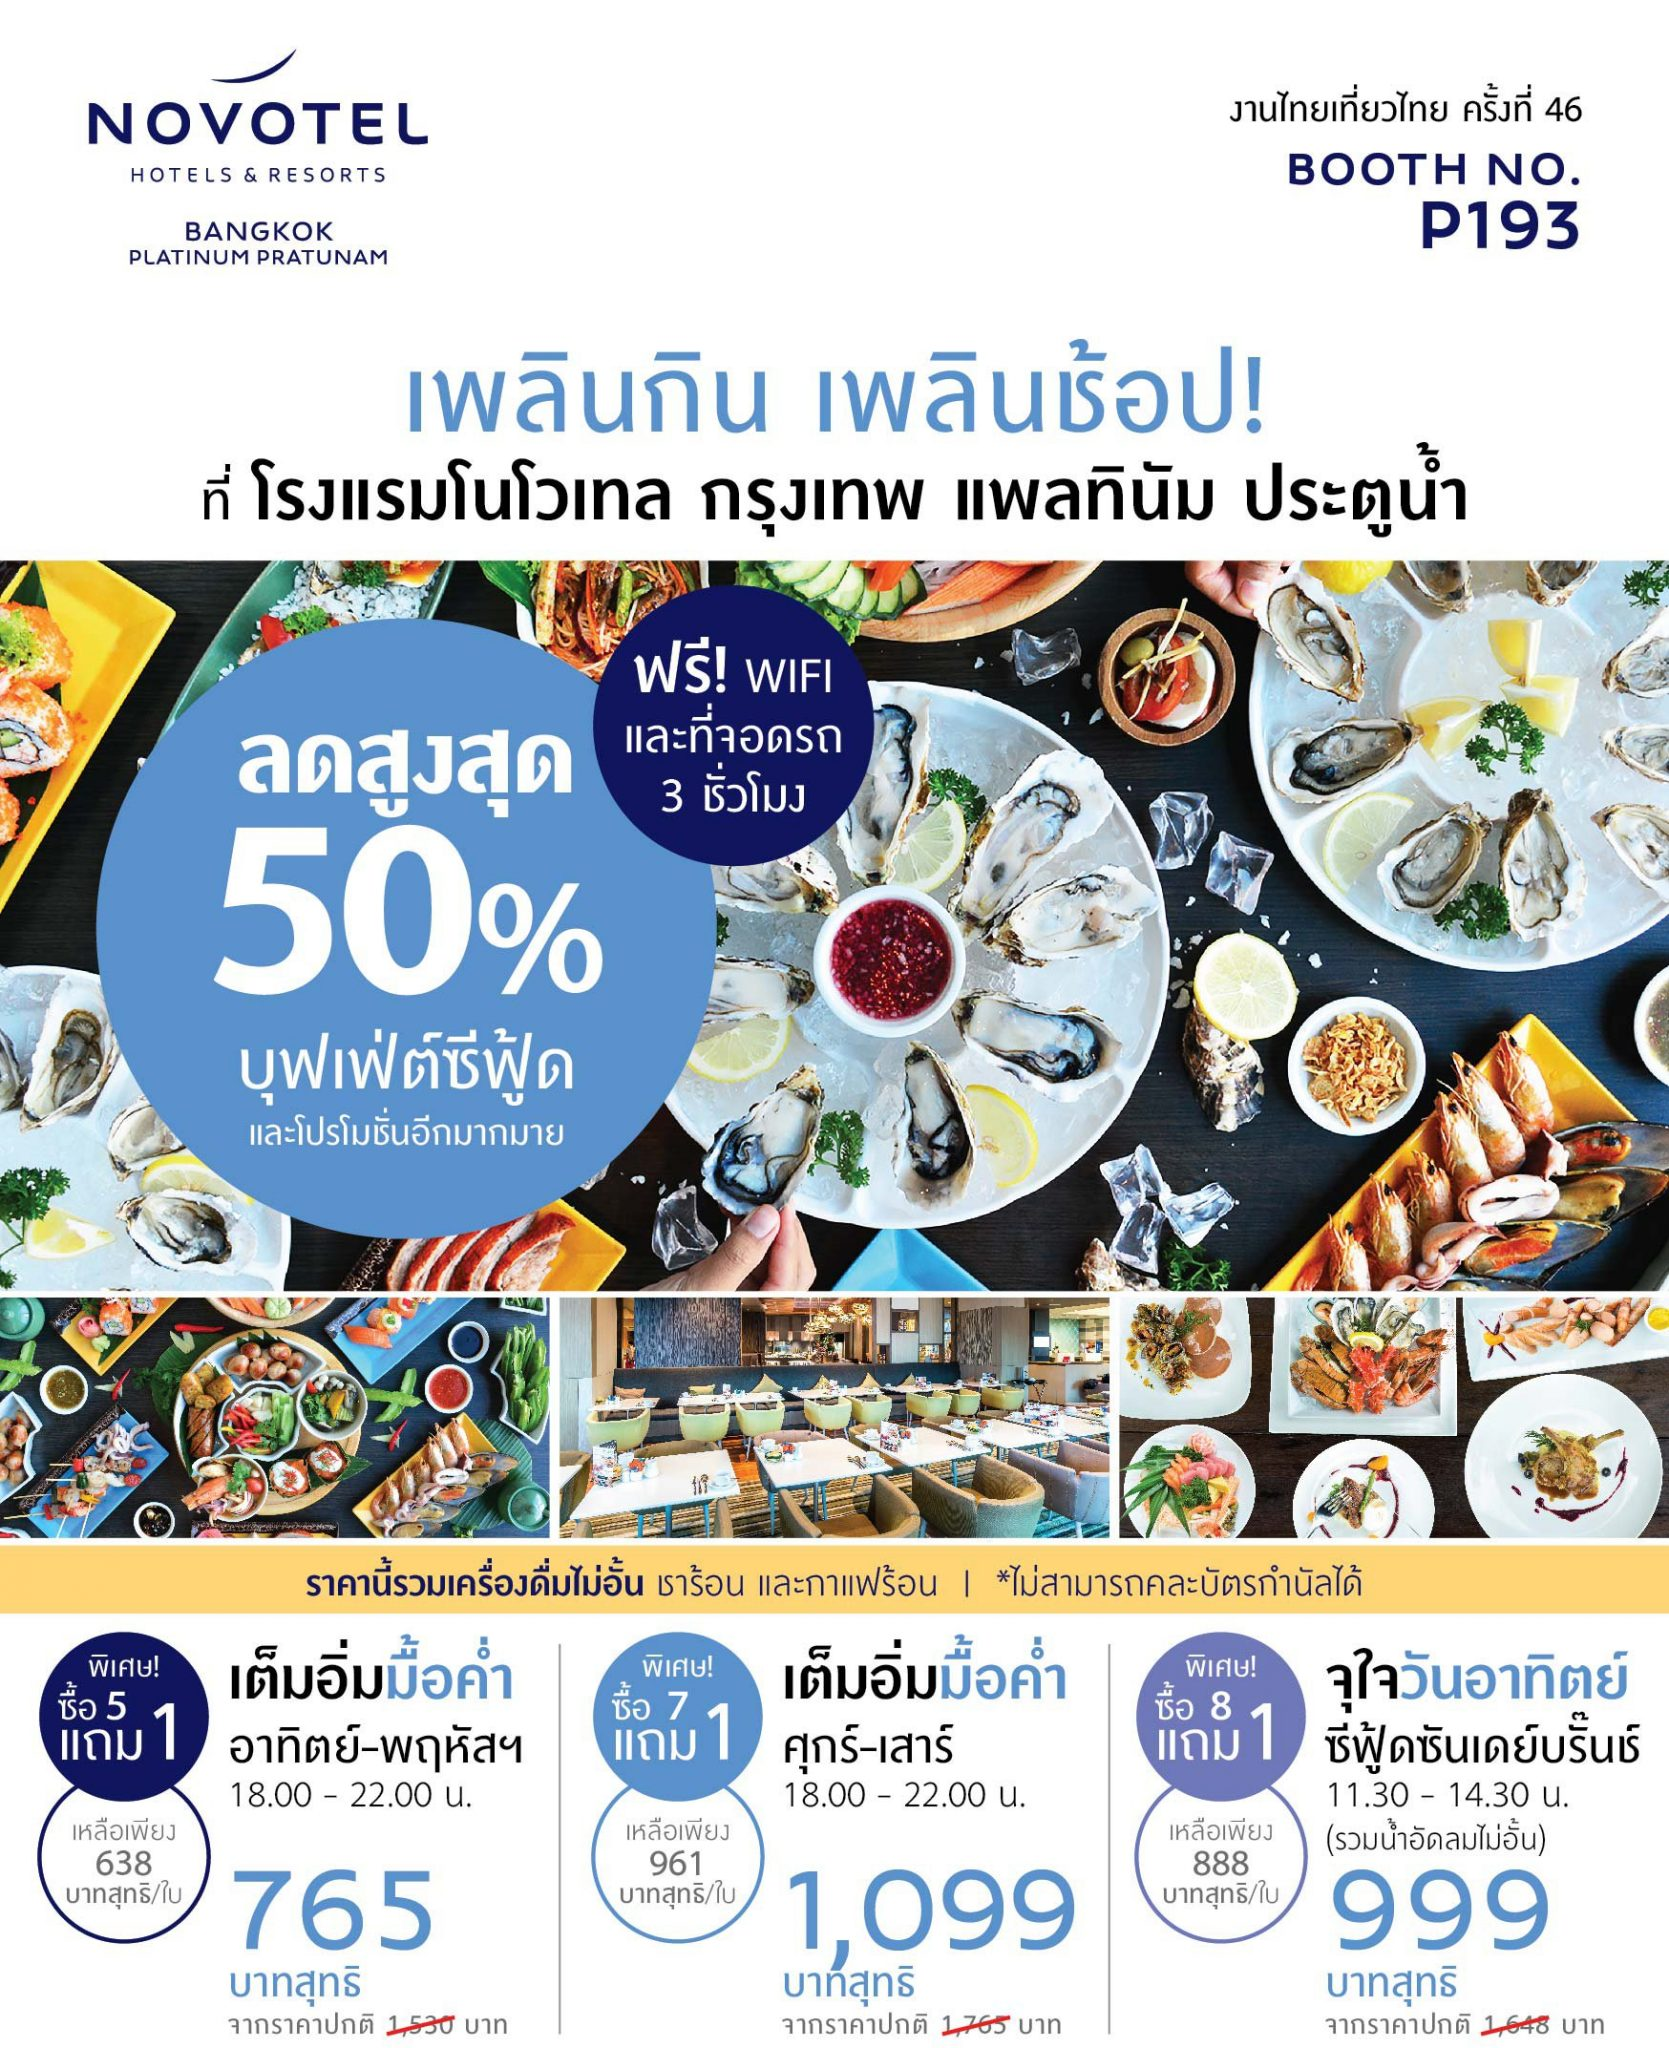 Hot Deals for Thai Tiew Thai #46: Up to 50% off Buffet offers at Novotel Bangkok Platinum 13 -